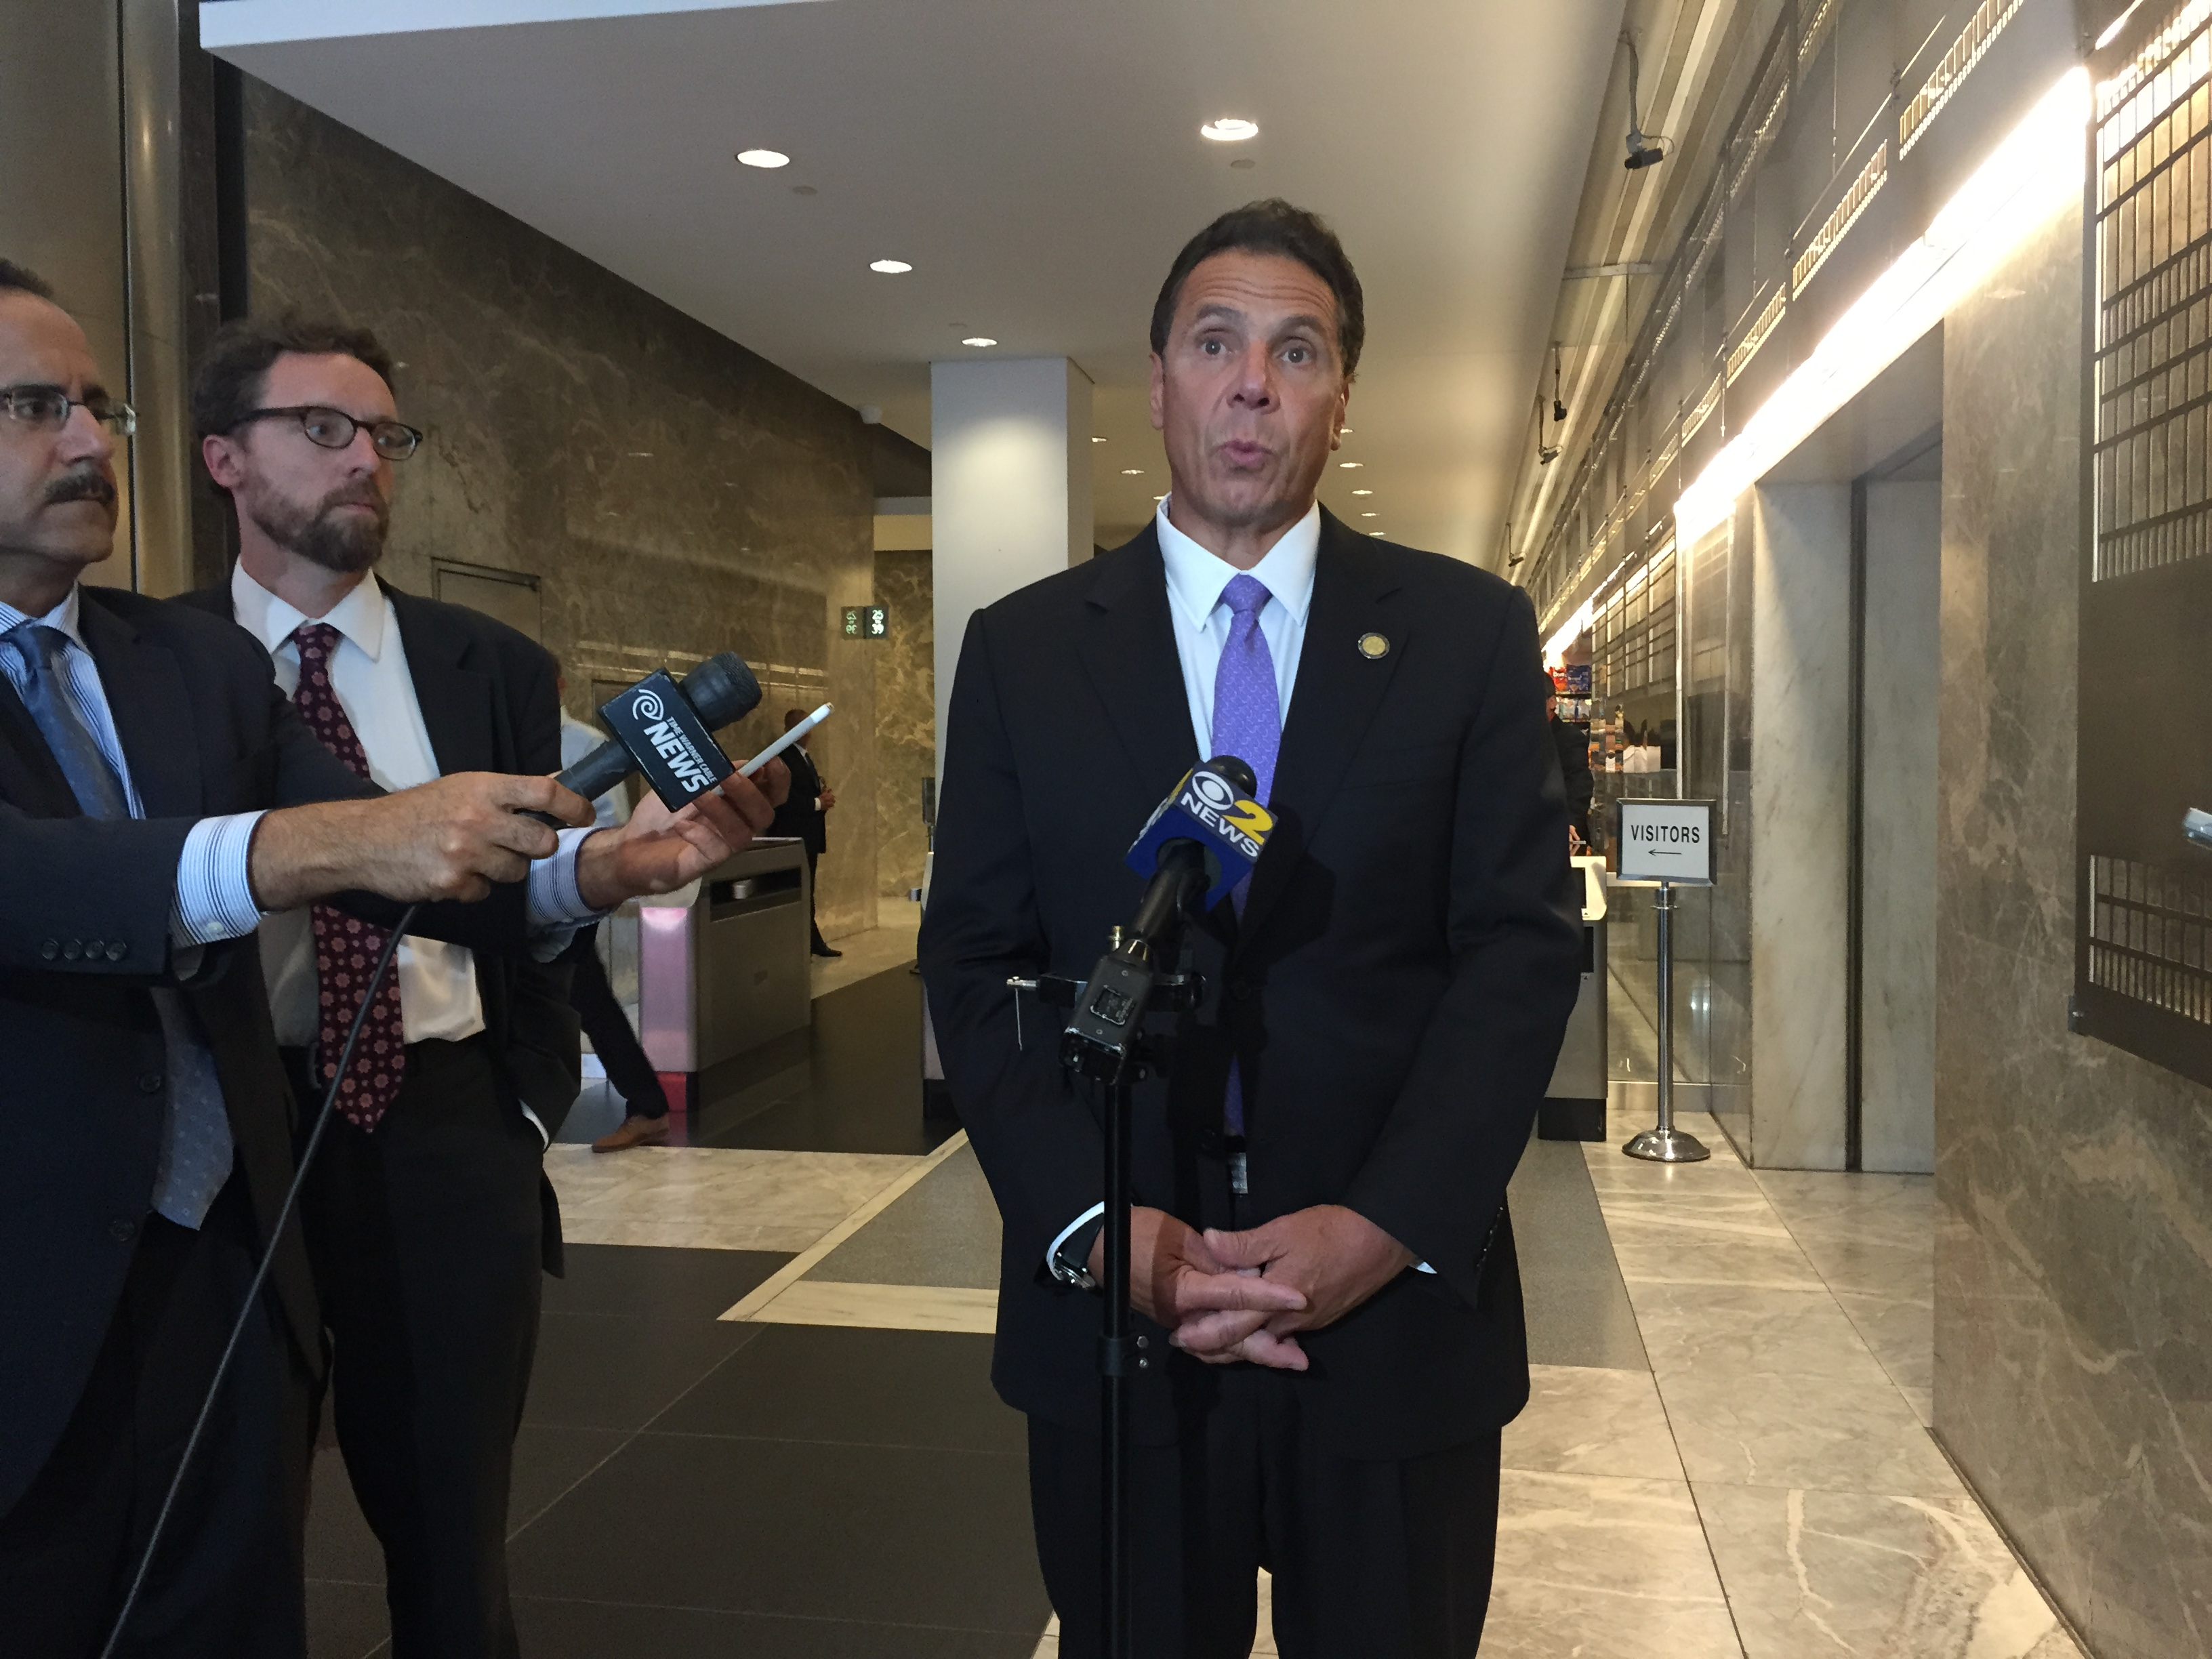 Gov. Andrew Cuomo discussing the funding plan today. (Photo: Jillian Jorgensen for Observer)